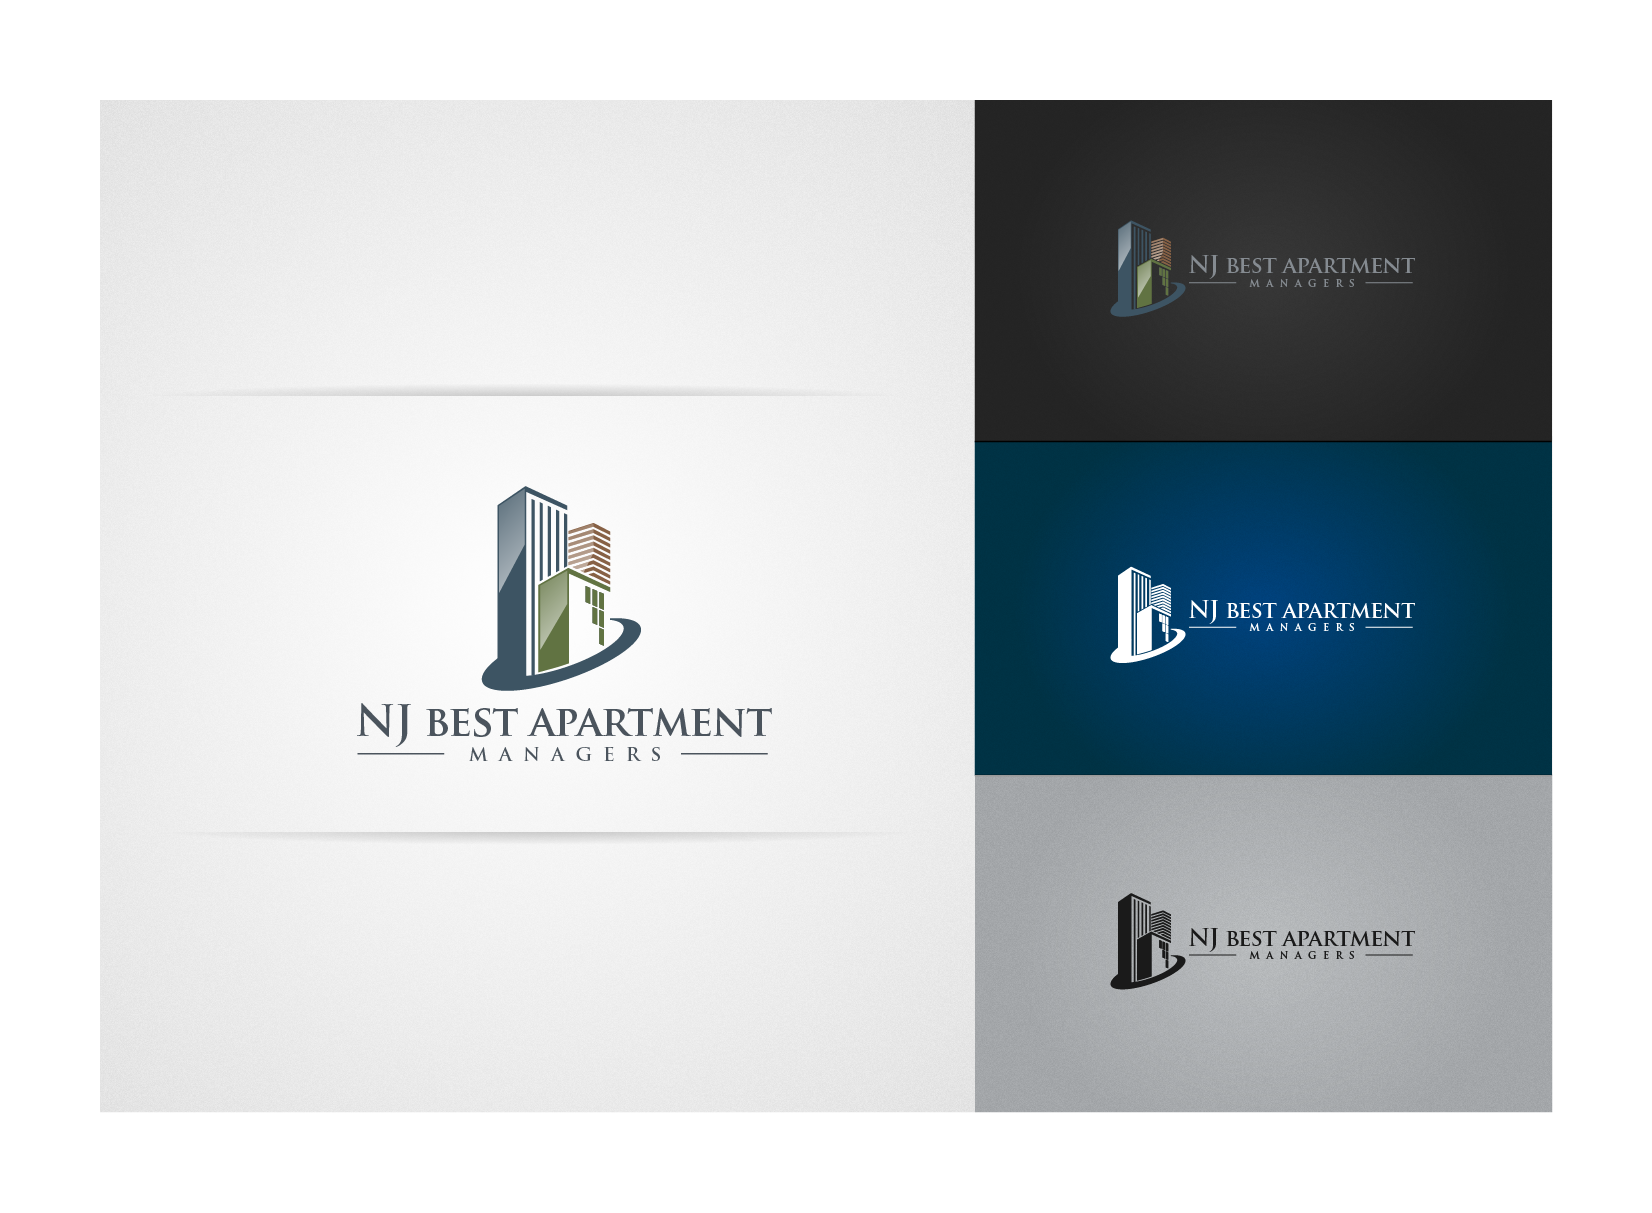 Help NJ Best Apartment Managers with a new logo